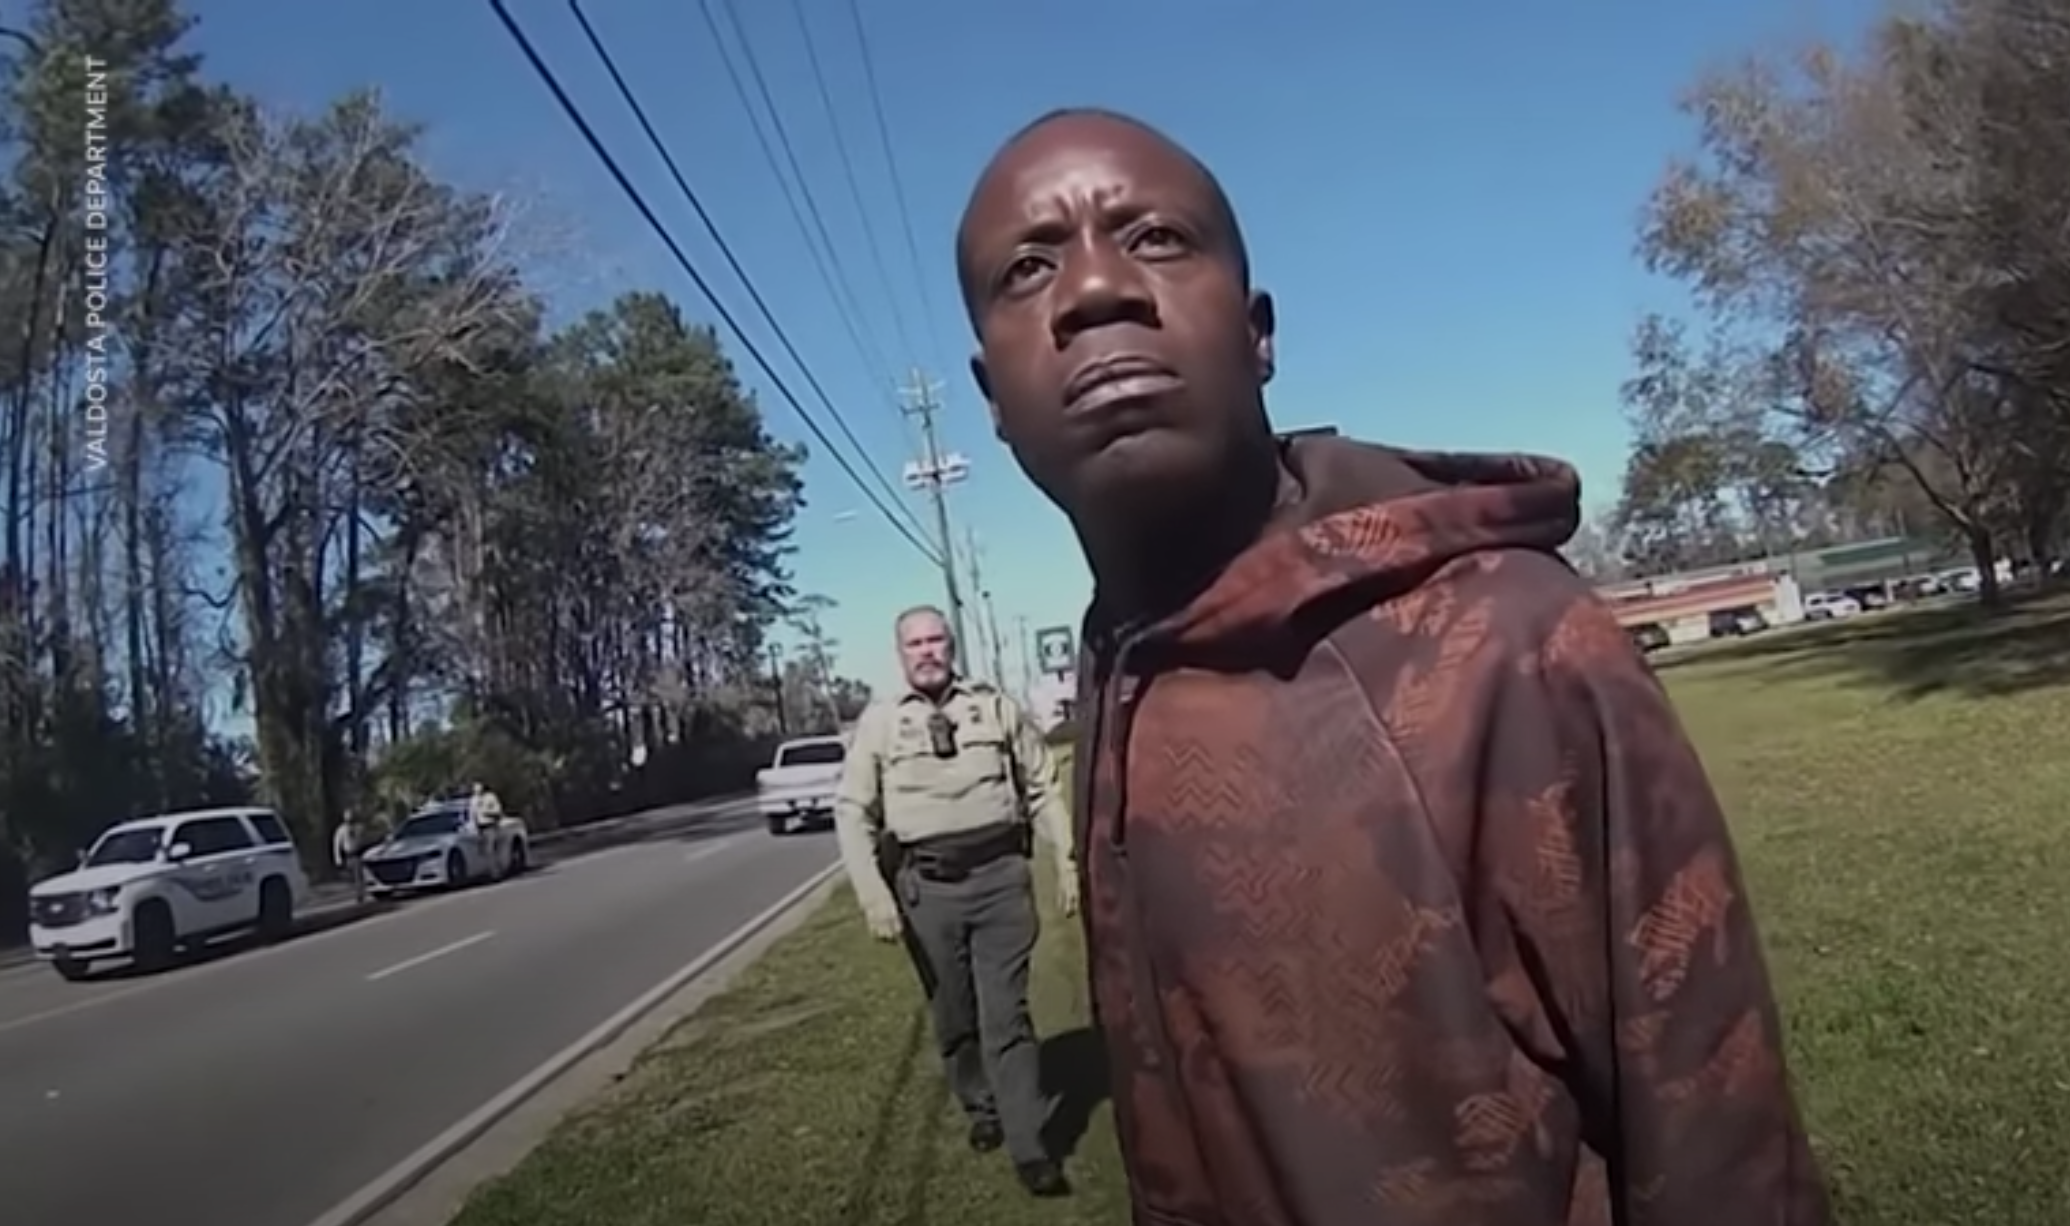 Antonio Arnelo Smith is approached by officers